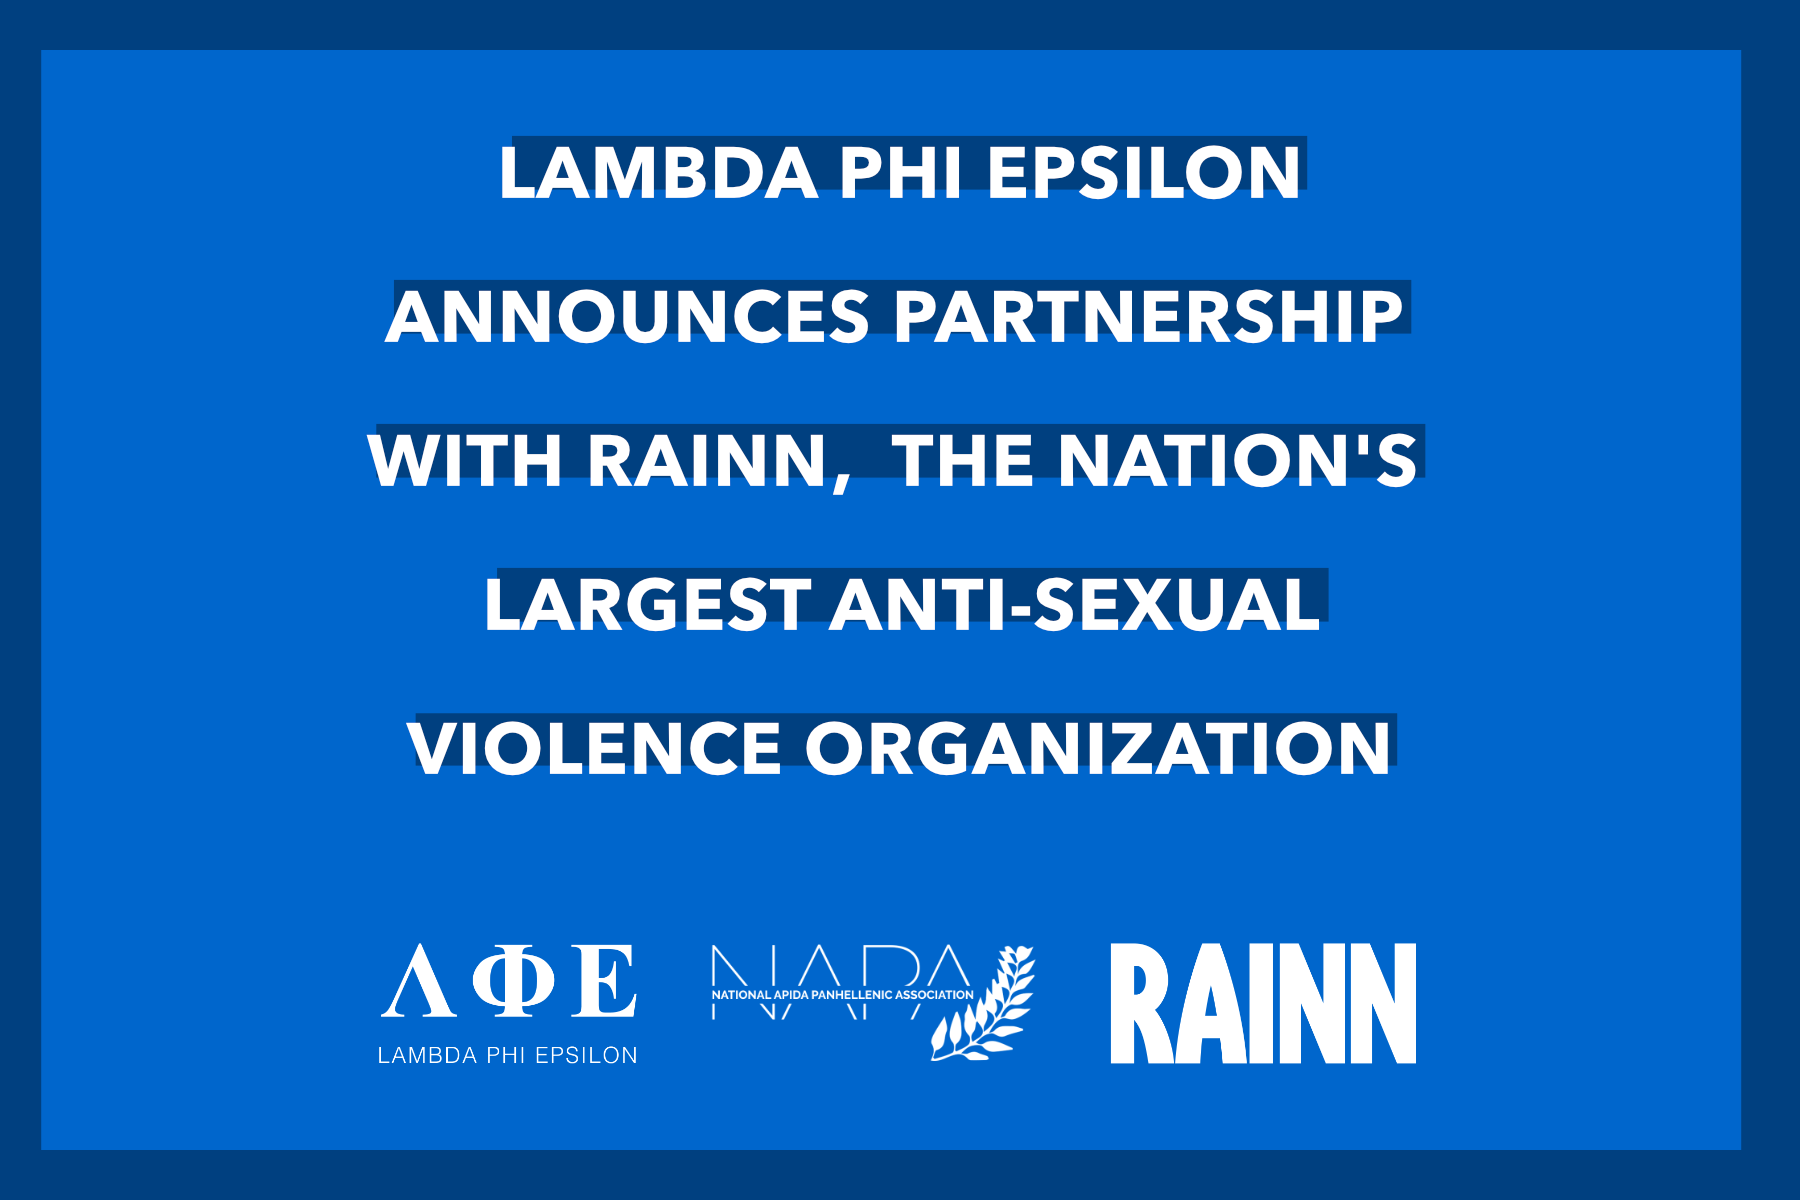 Lambda Phi Epsilon announces partnership with RAINN